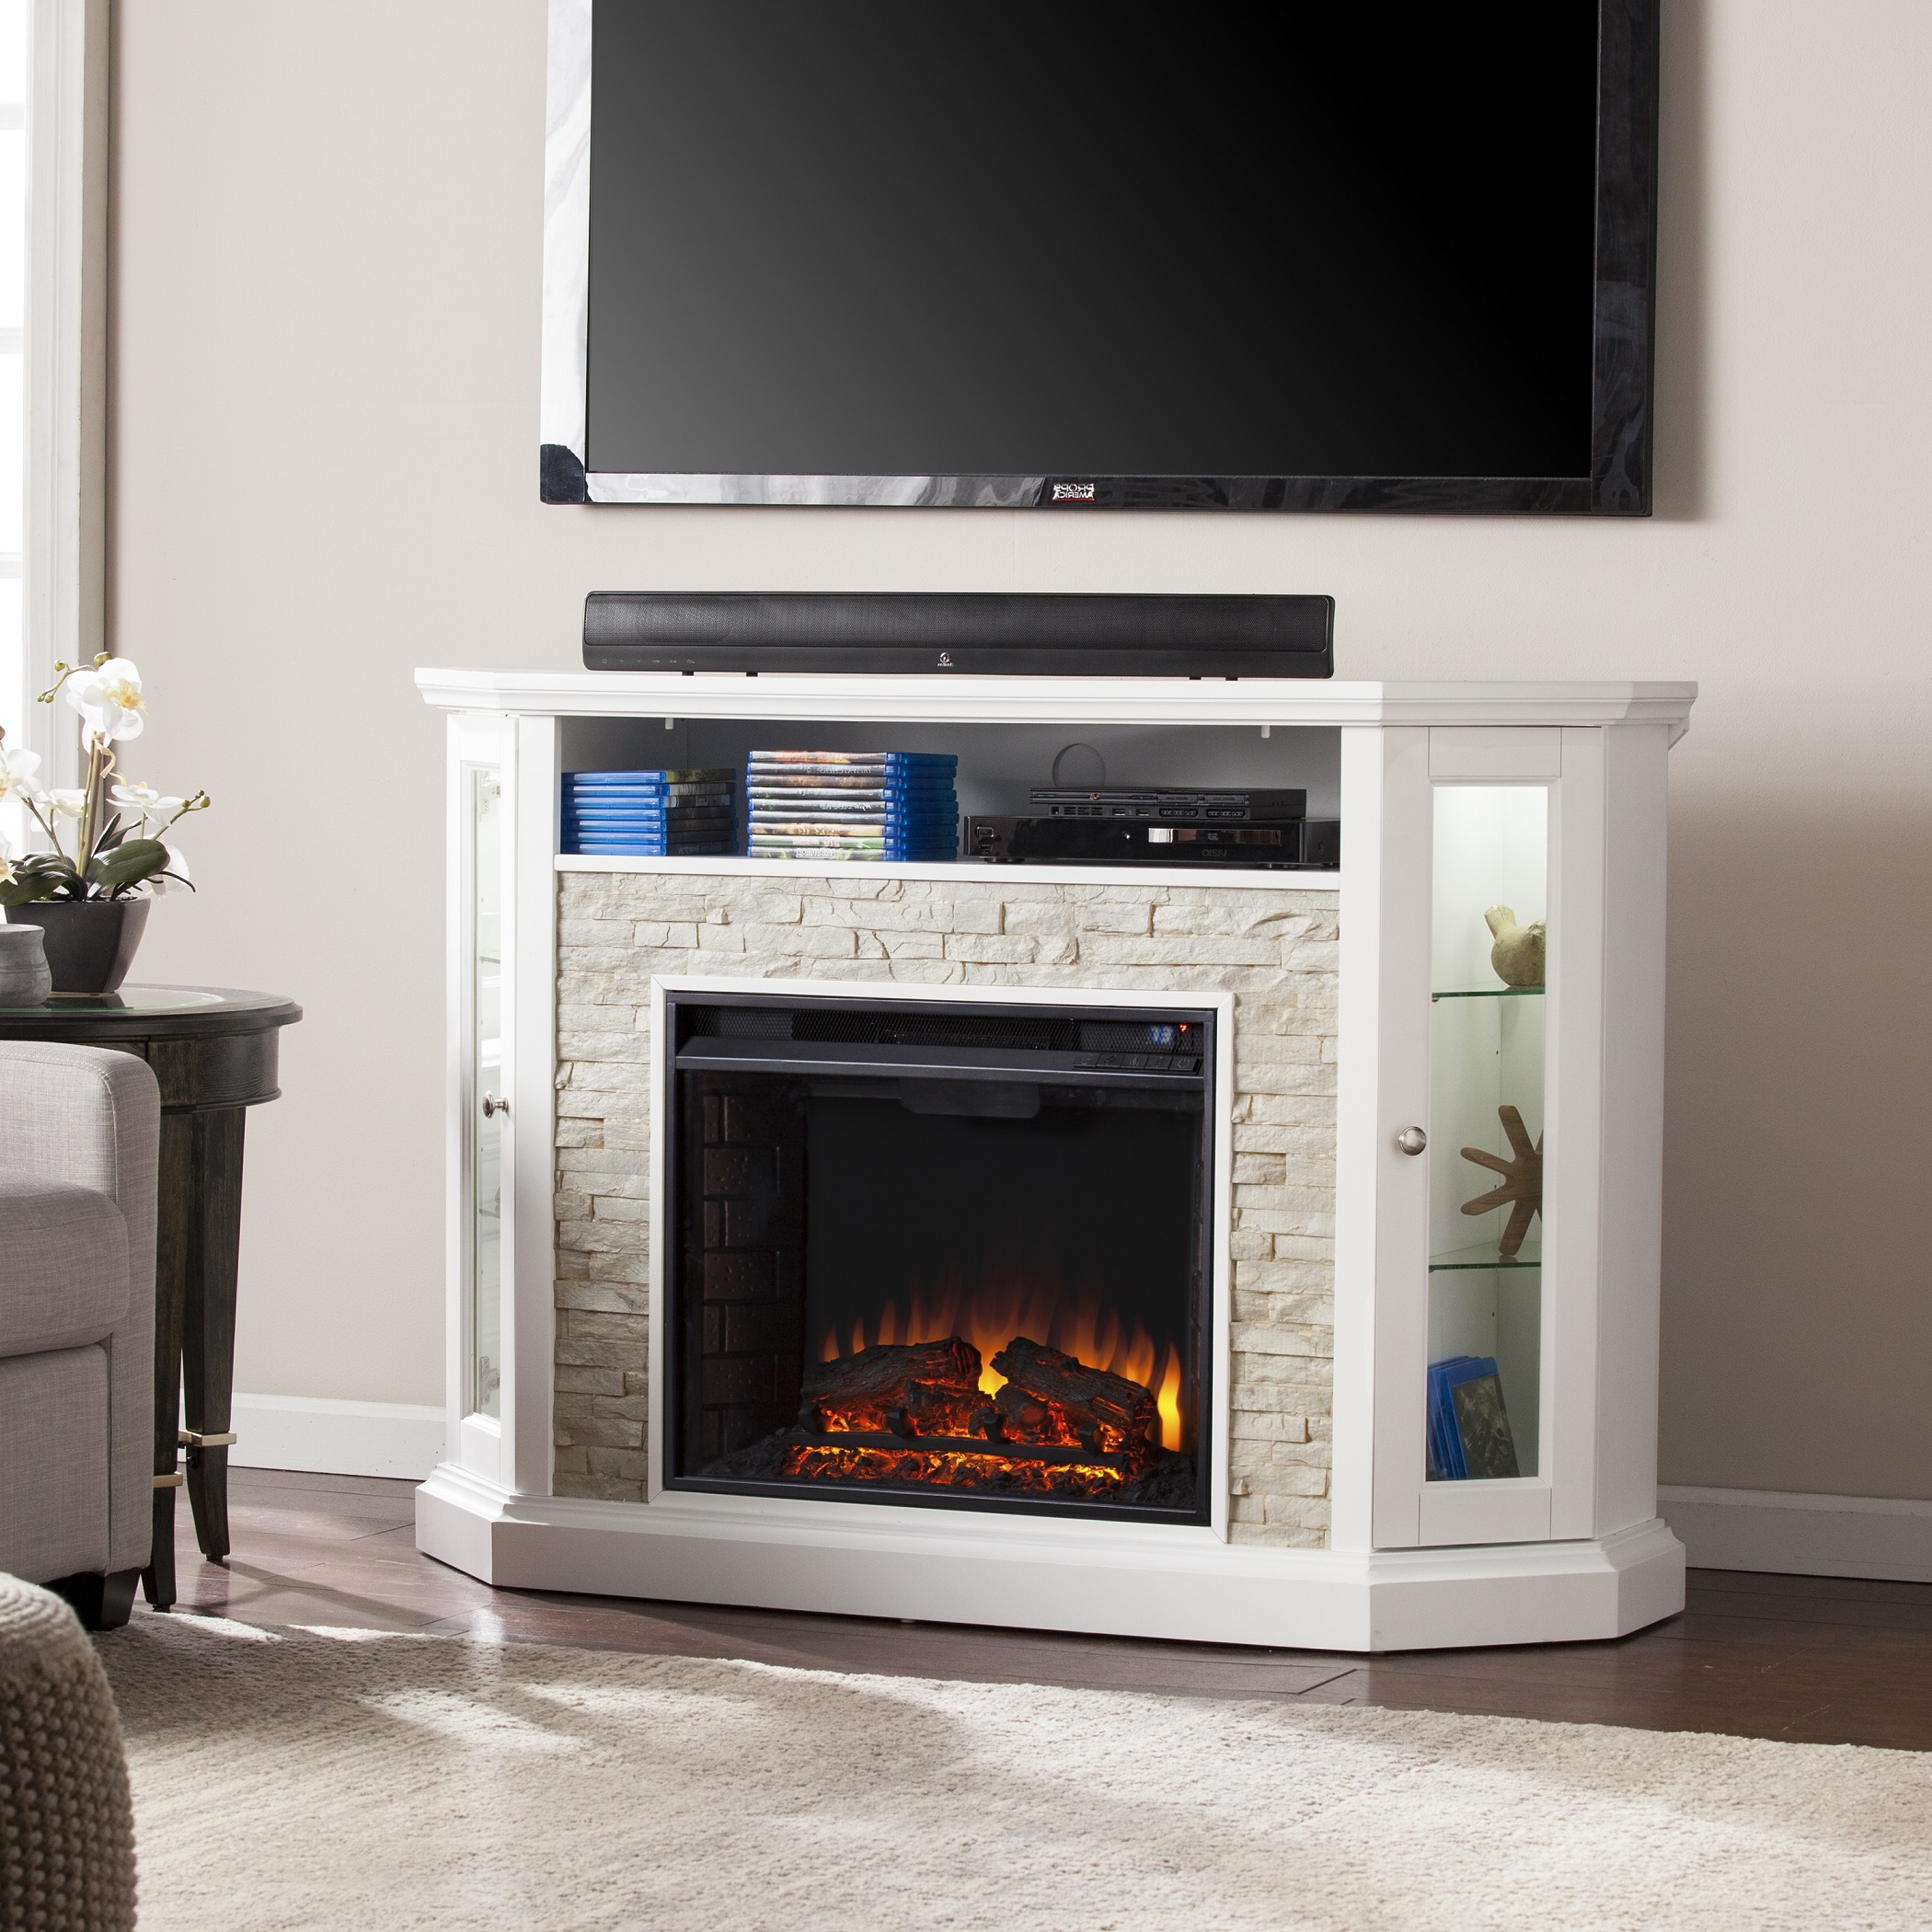 51 60 inch electric fireplaces free shipping portablefireplace com